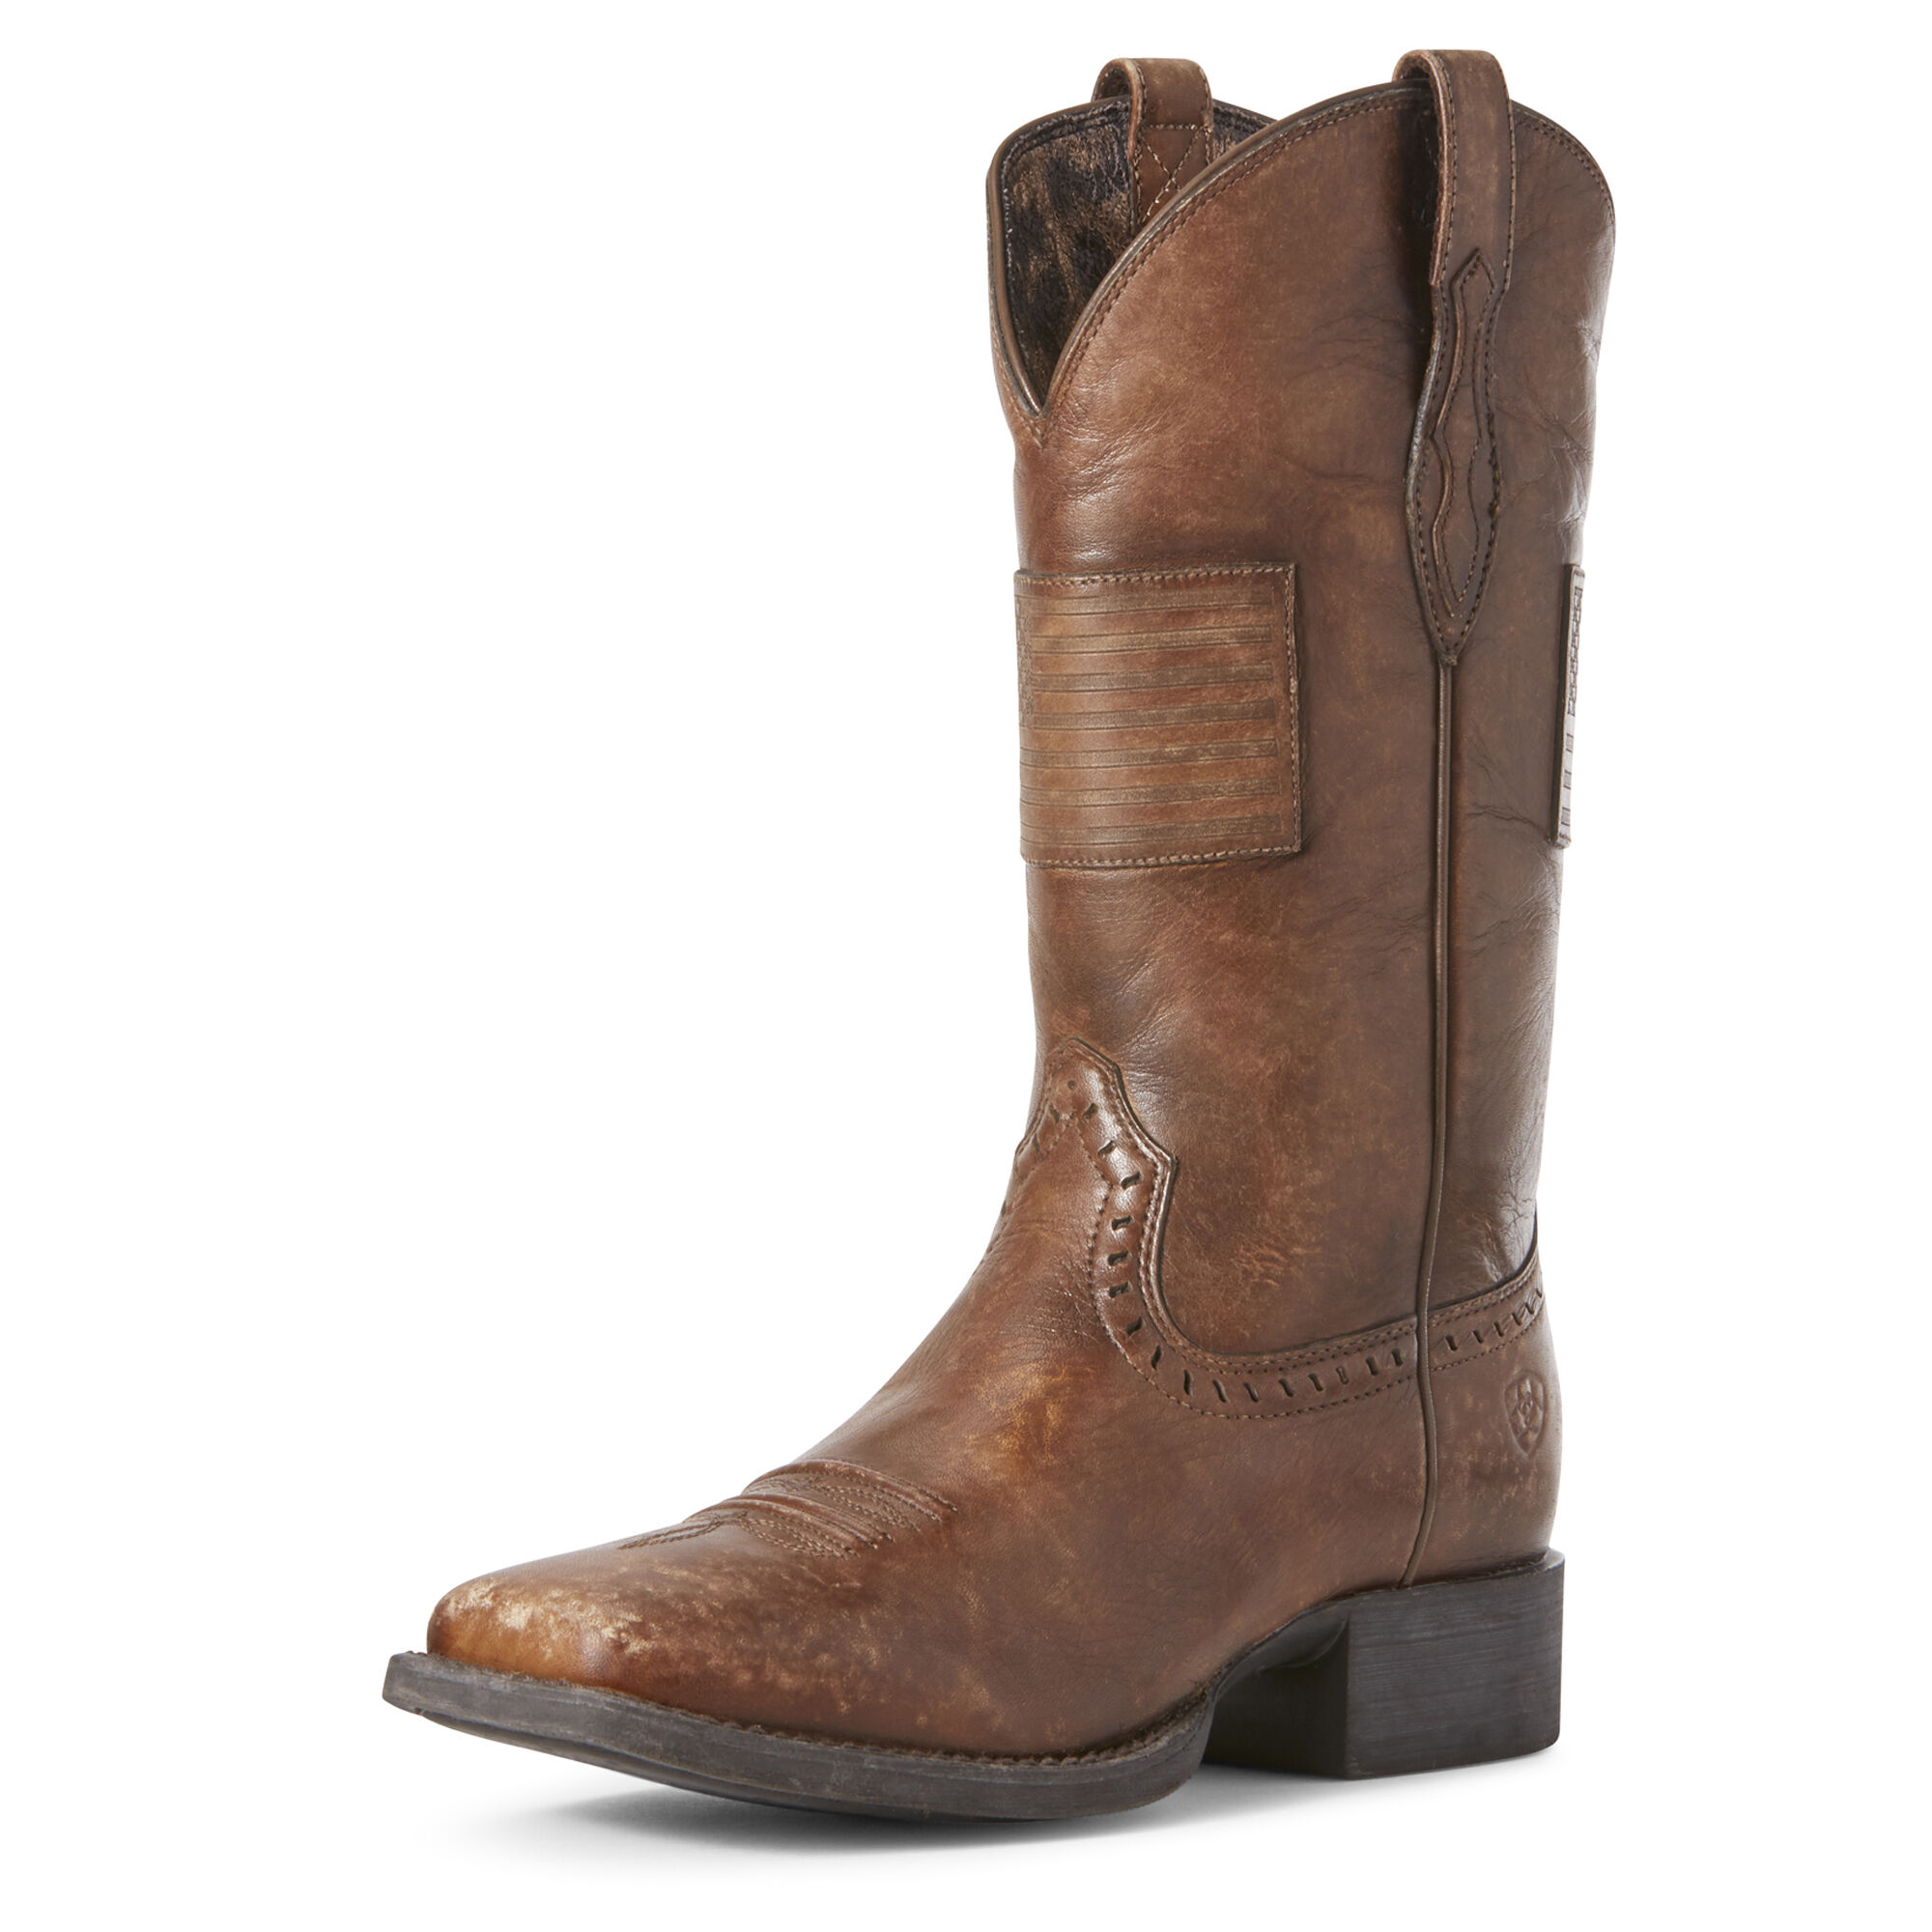 Women's Round Up Patriot Western Boots in Silly Brown by Ariat